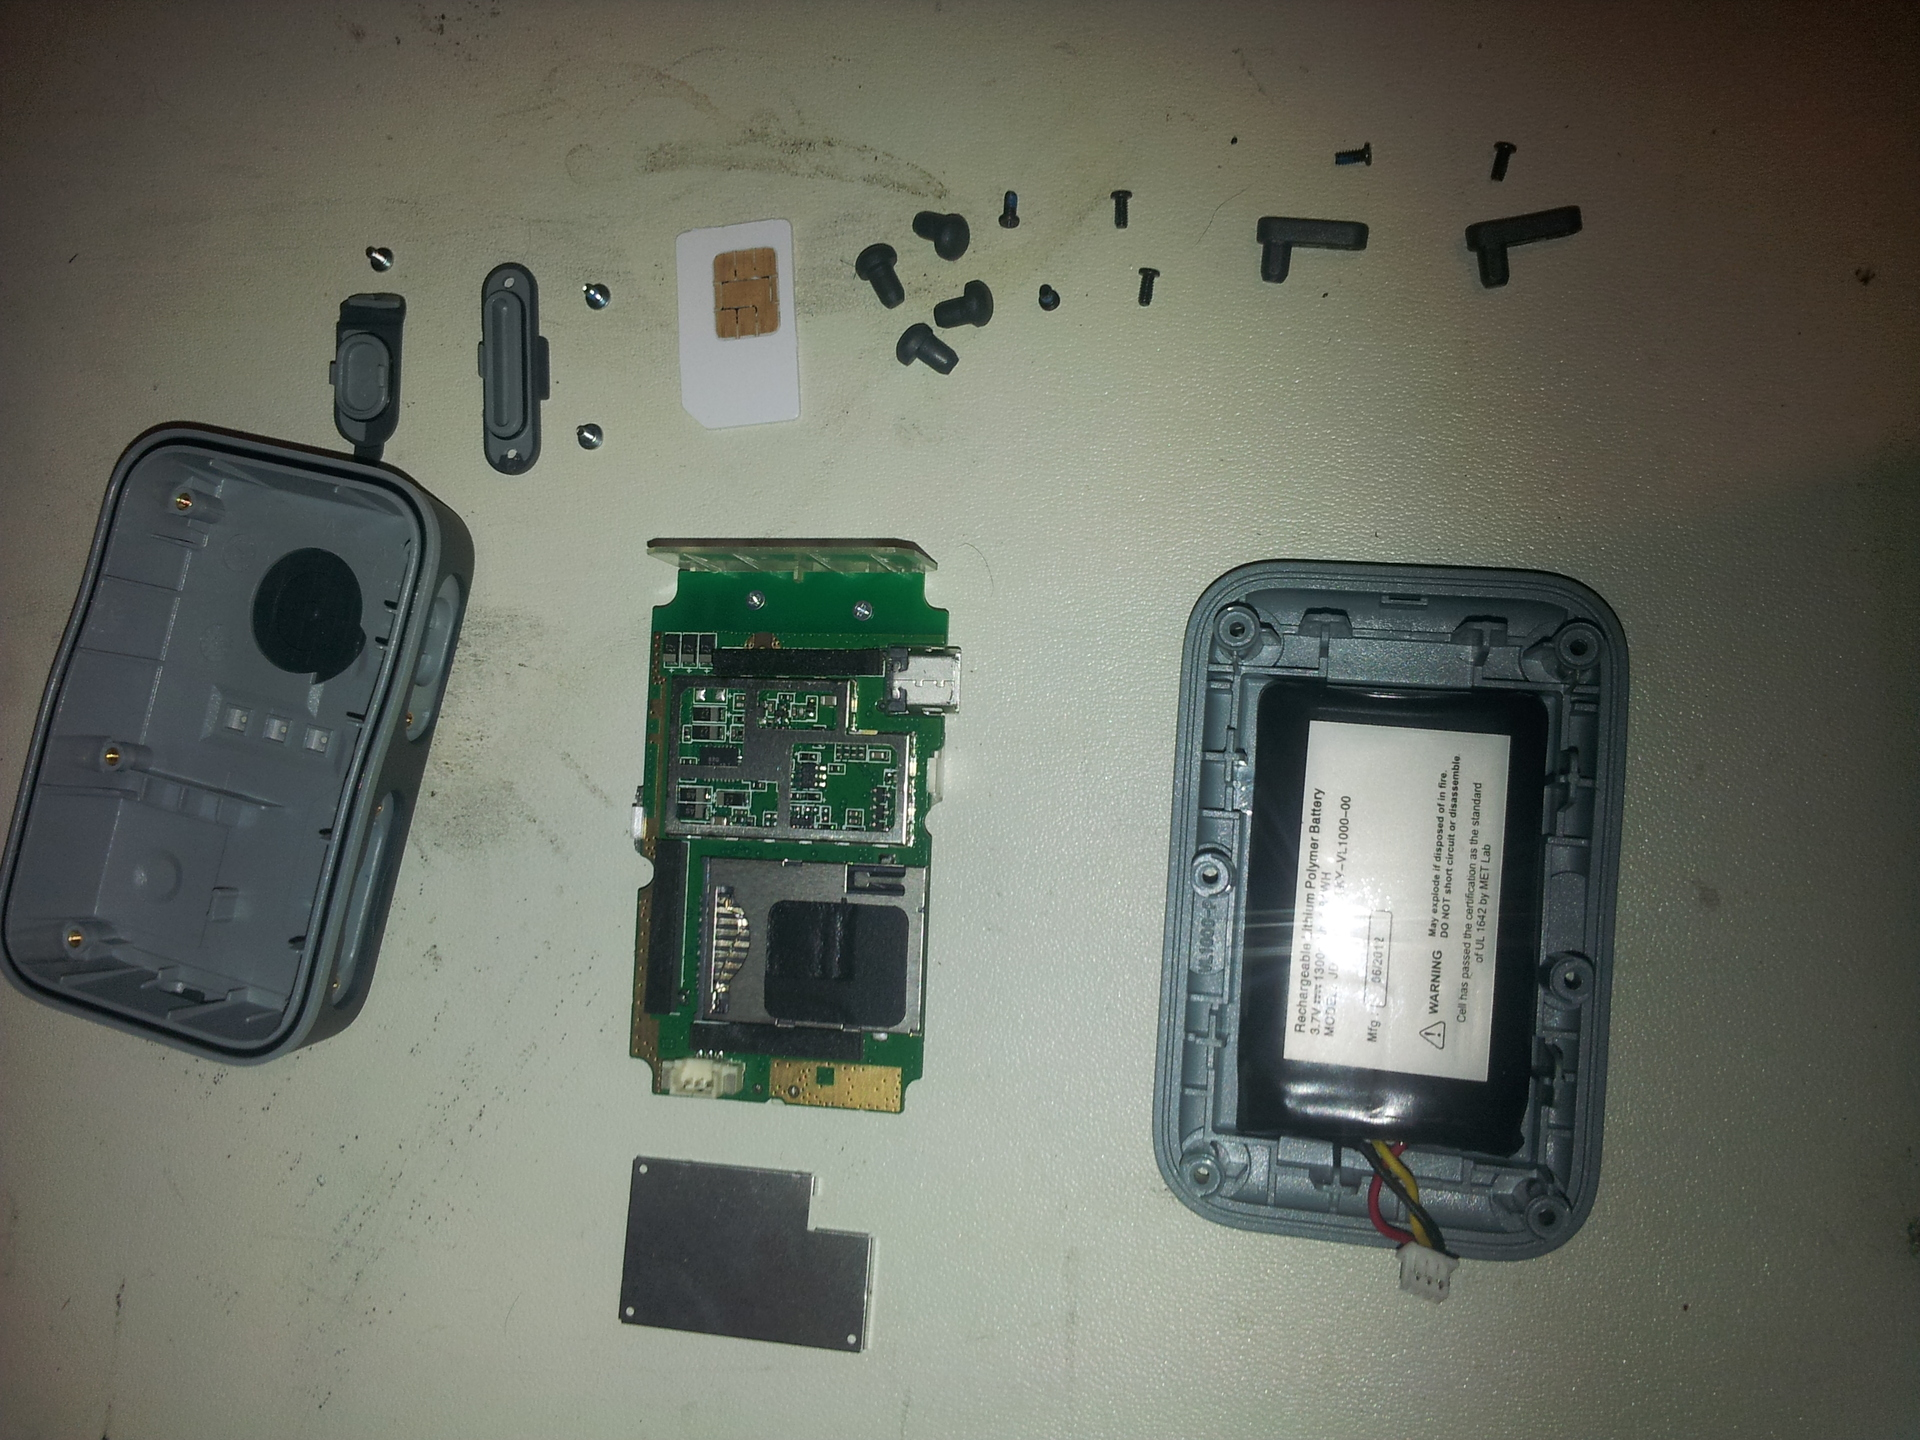 torn apart ezoom zoombak gps. ezoom got purchased by brickhouse security, I no longer have service and toold the device apart.